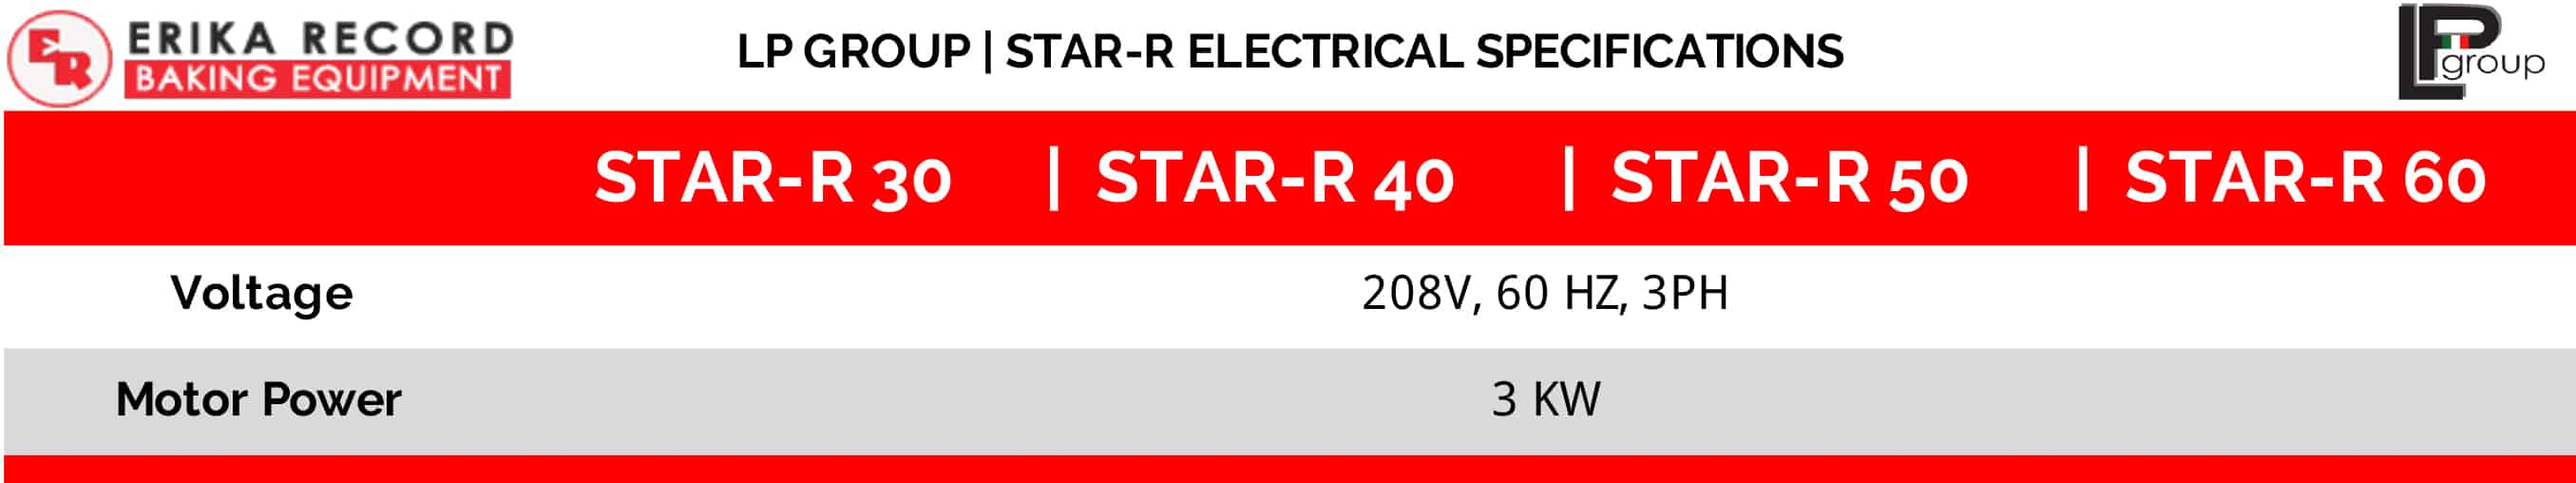 LP Group | Star-R Spiral Mixer | Electric Specifications